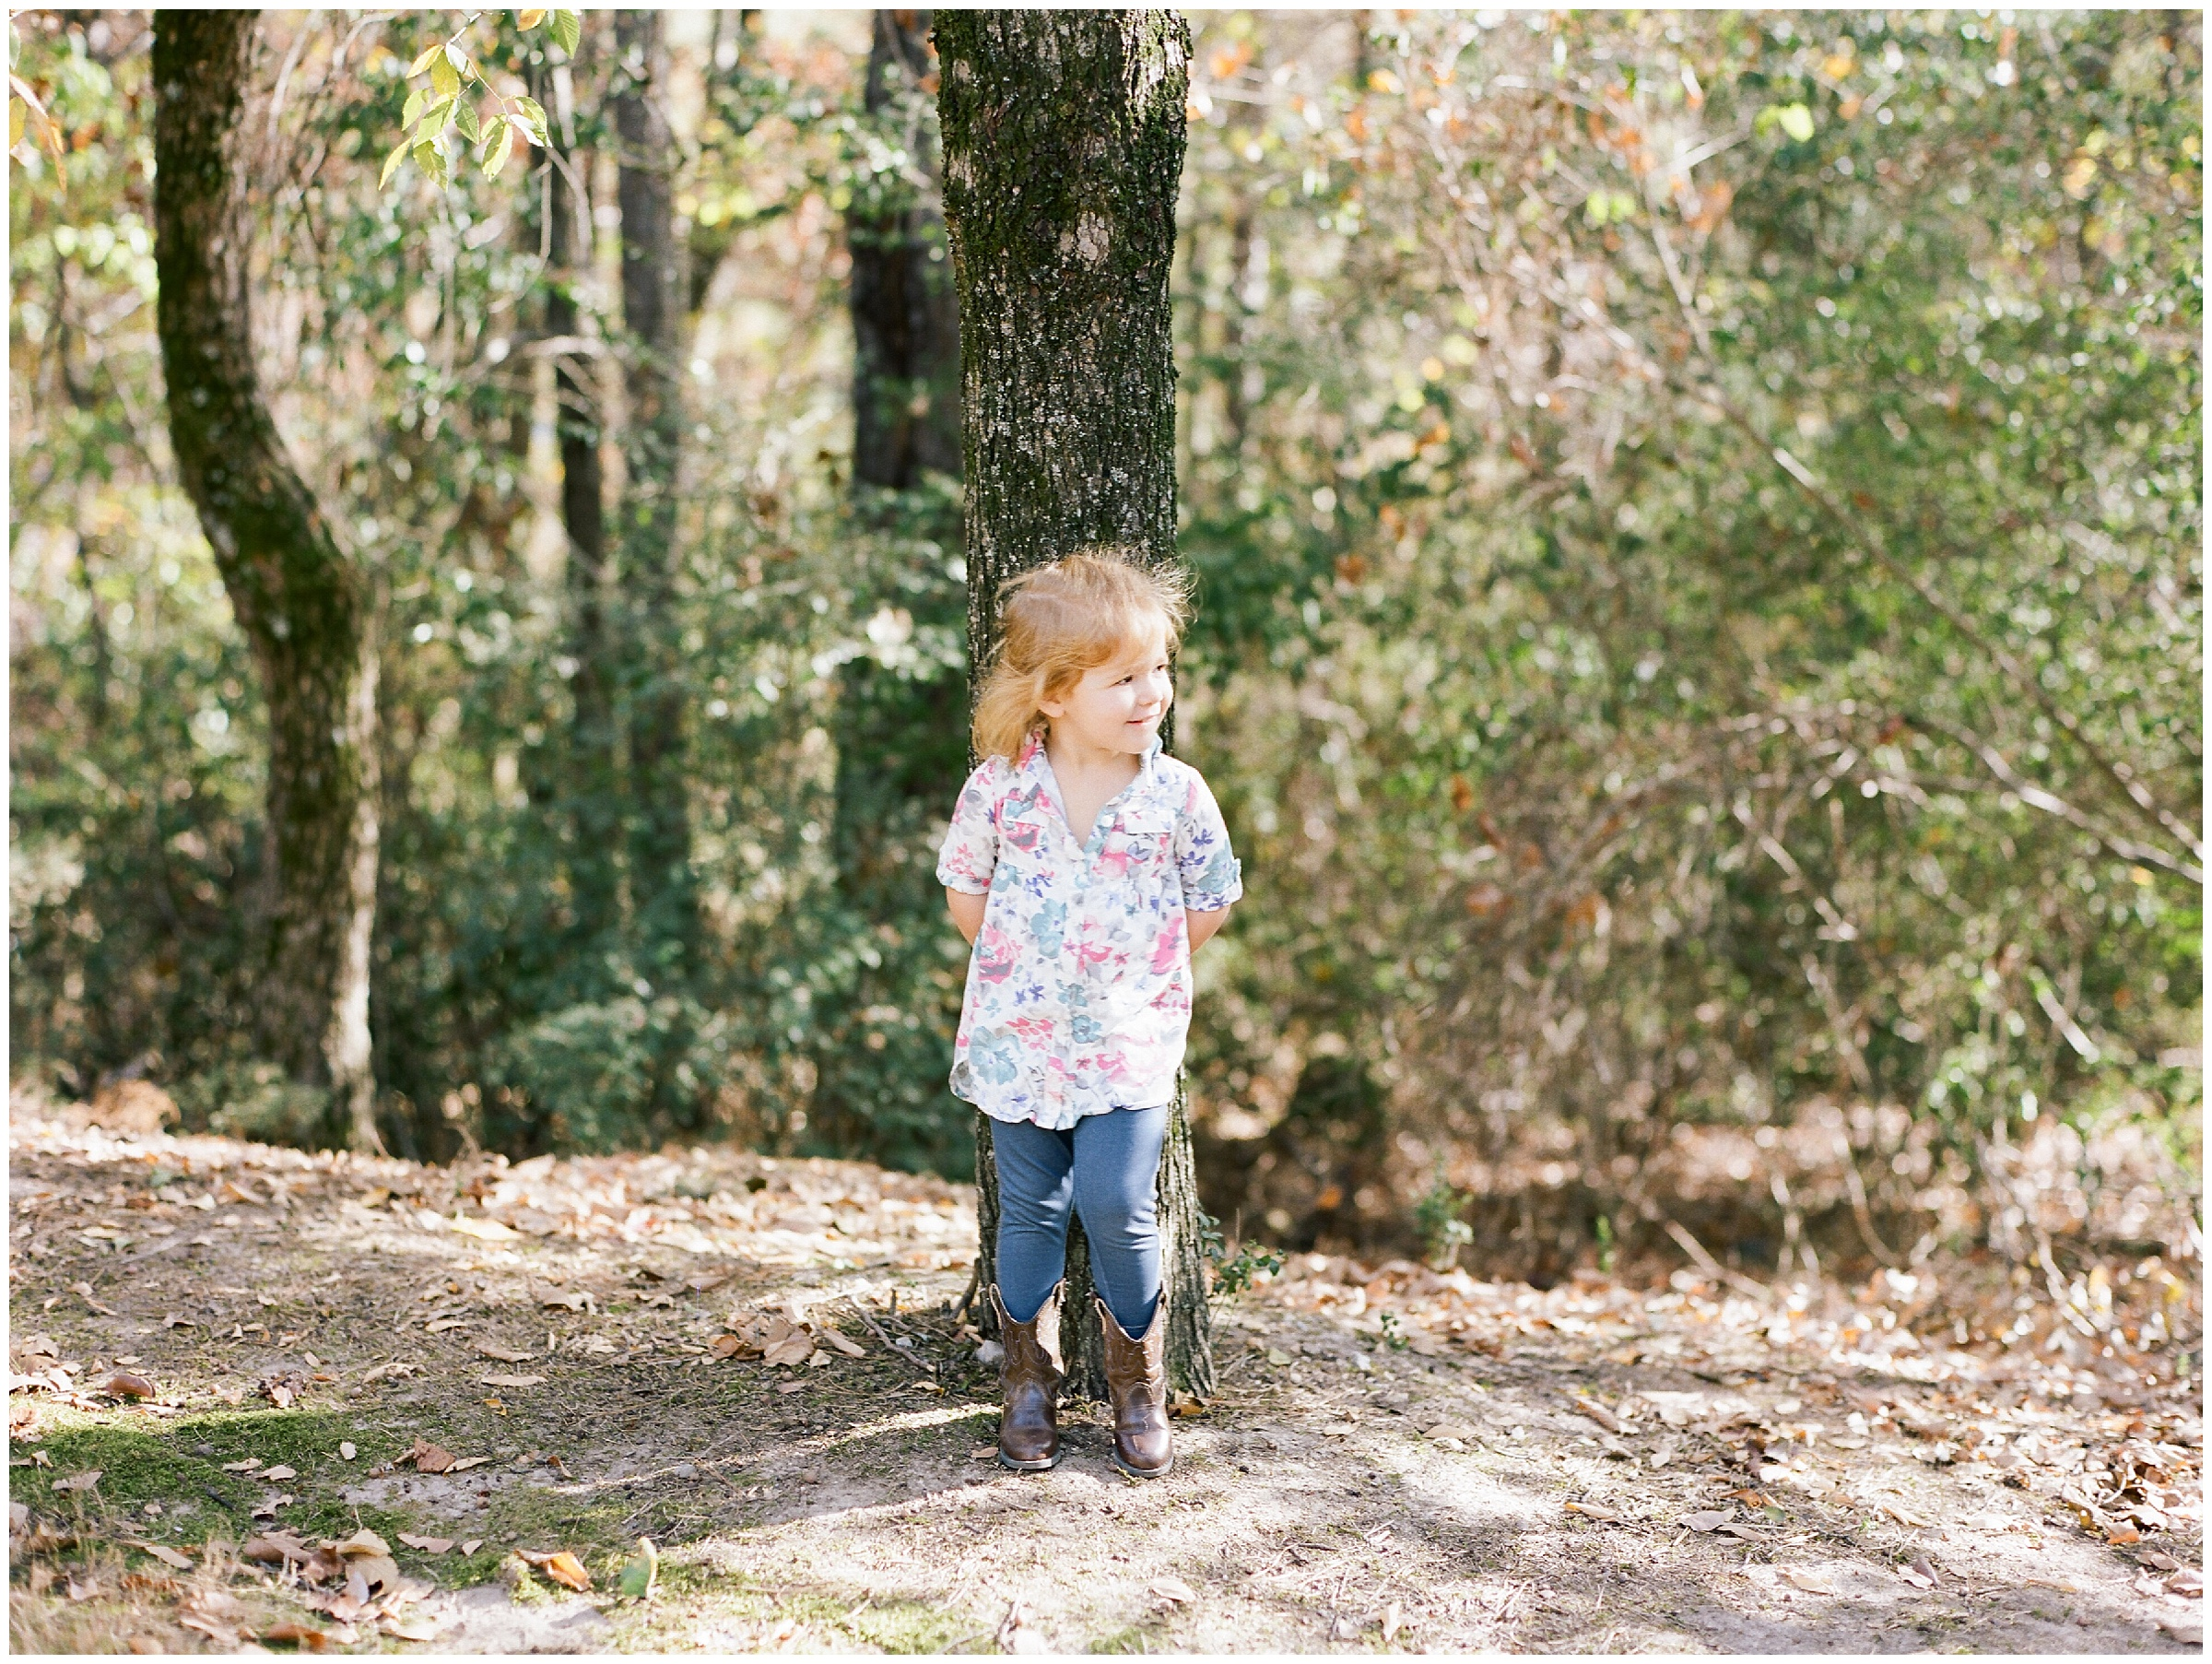 SAUTER-62_atlanta-film-photographer-christina-pugh.jpg